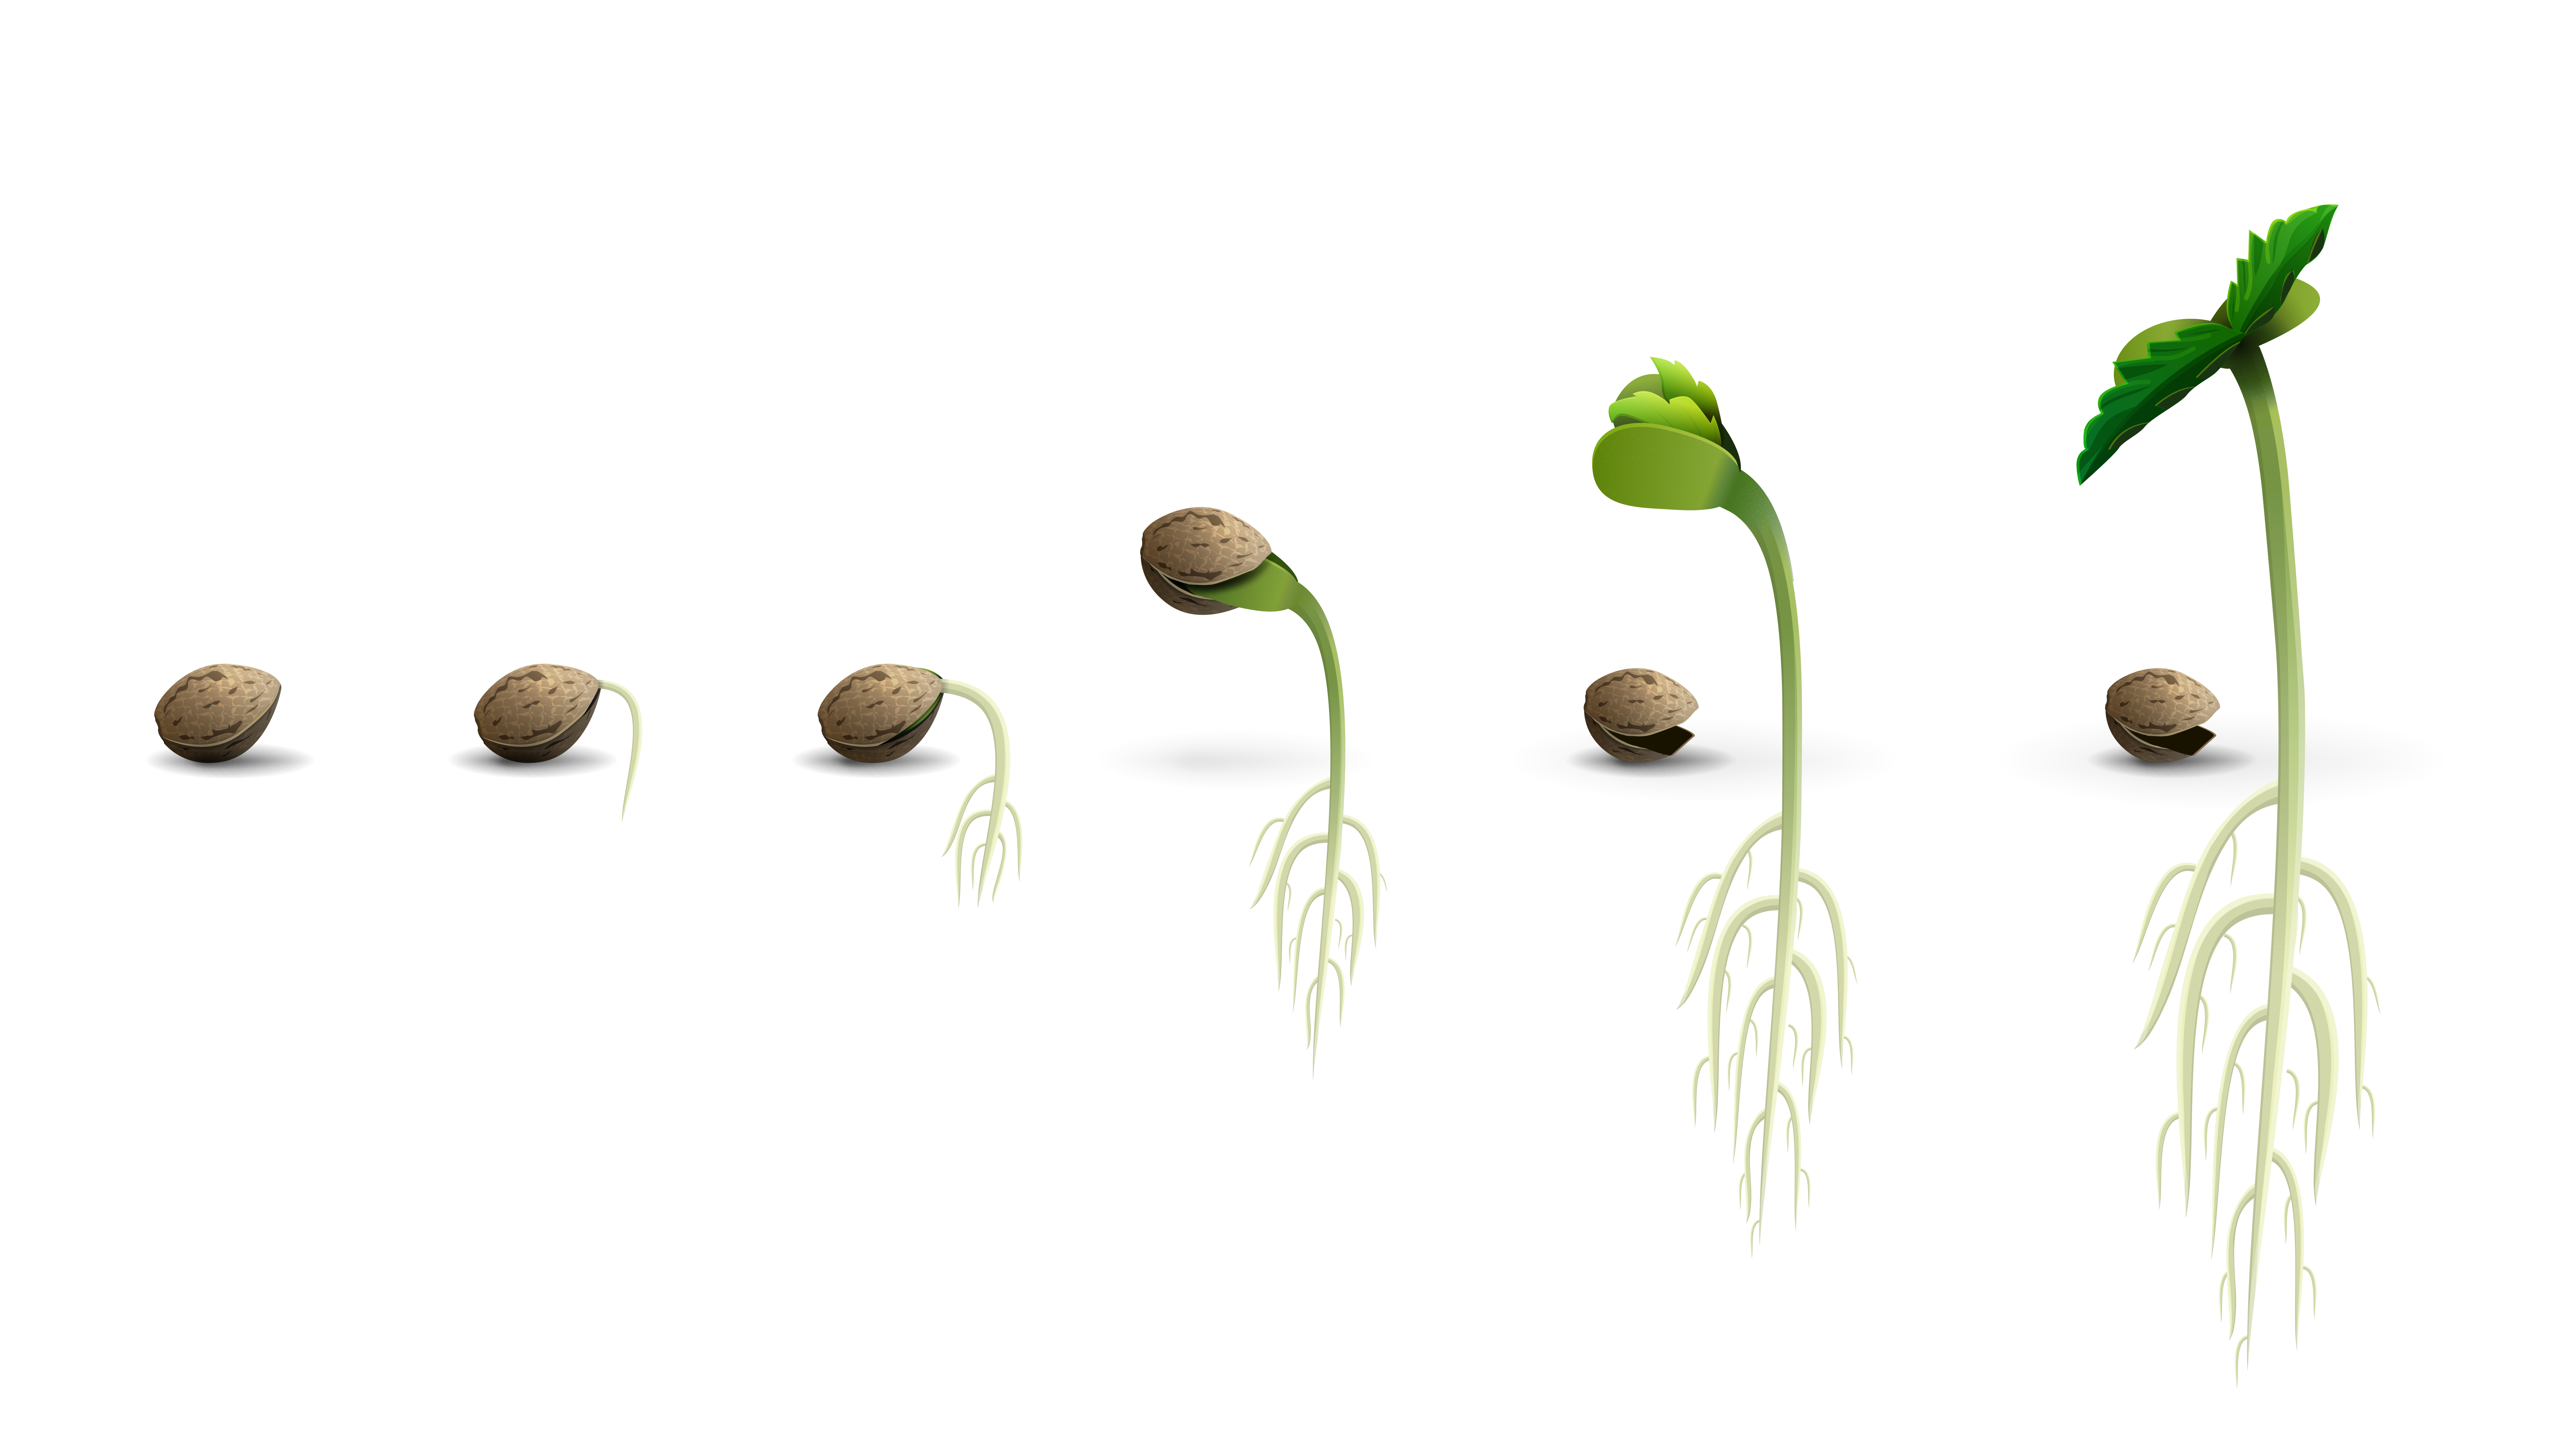 Stages of cannabis seed germination - Download Free ...